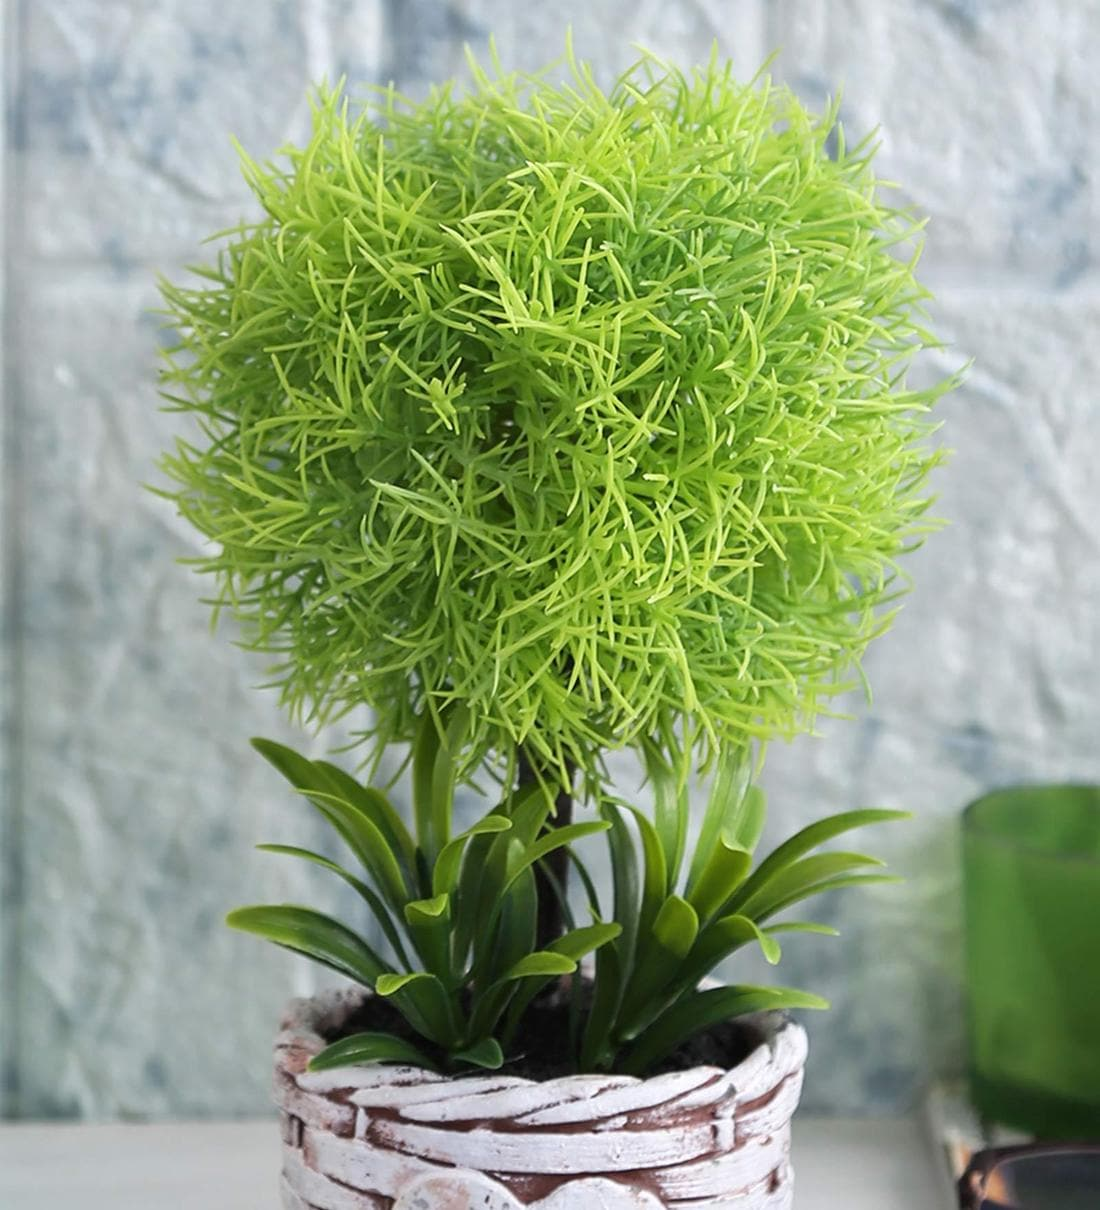 Buy Light Green Soft Touch Artificial Topiary Plant In A Ceramic Pot By Fourwalls Online Artificial Plants Artificial Plants Home Decor Pepperfry Product